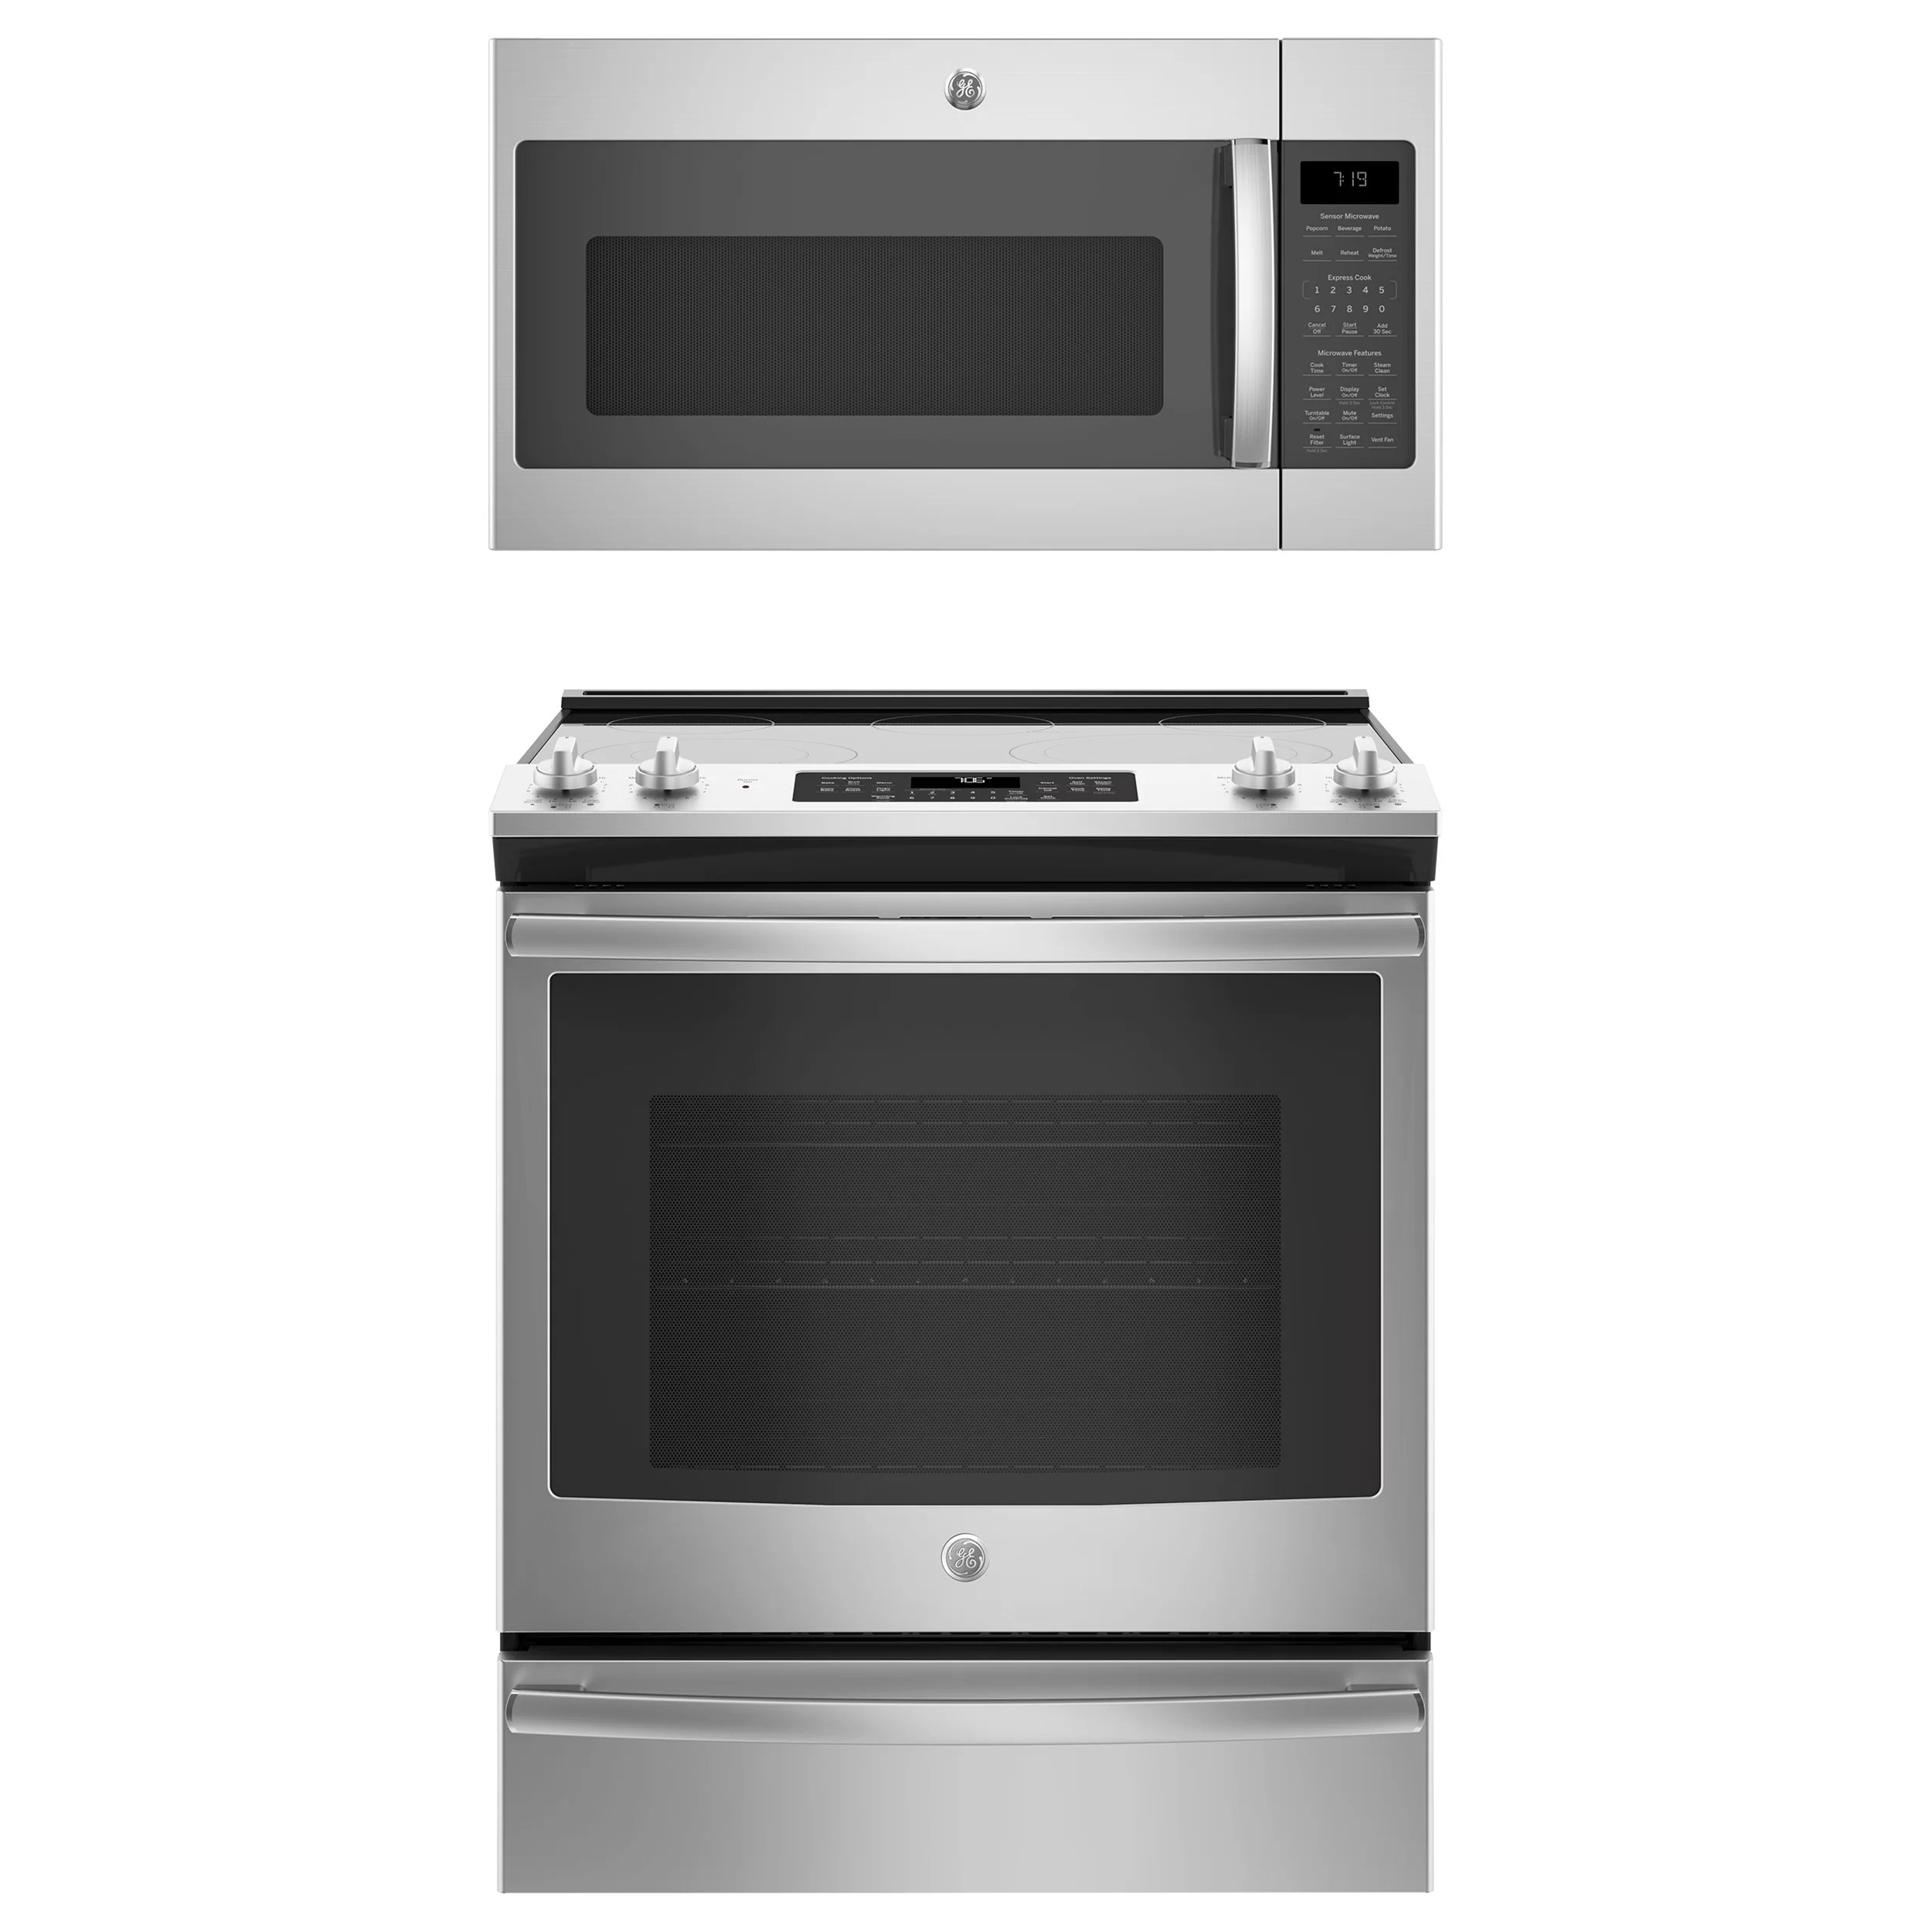 freestanding ranges tools home improvement ge 2 piece stainless steel kitchen package with 30 slide in range and over the range microwave hood